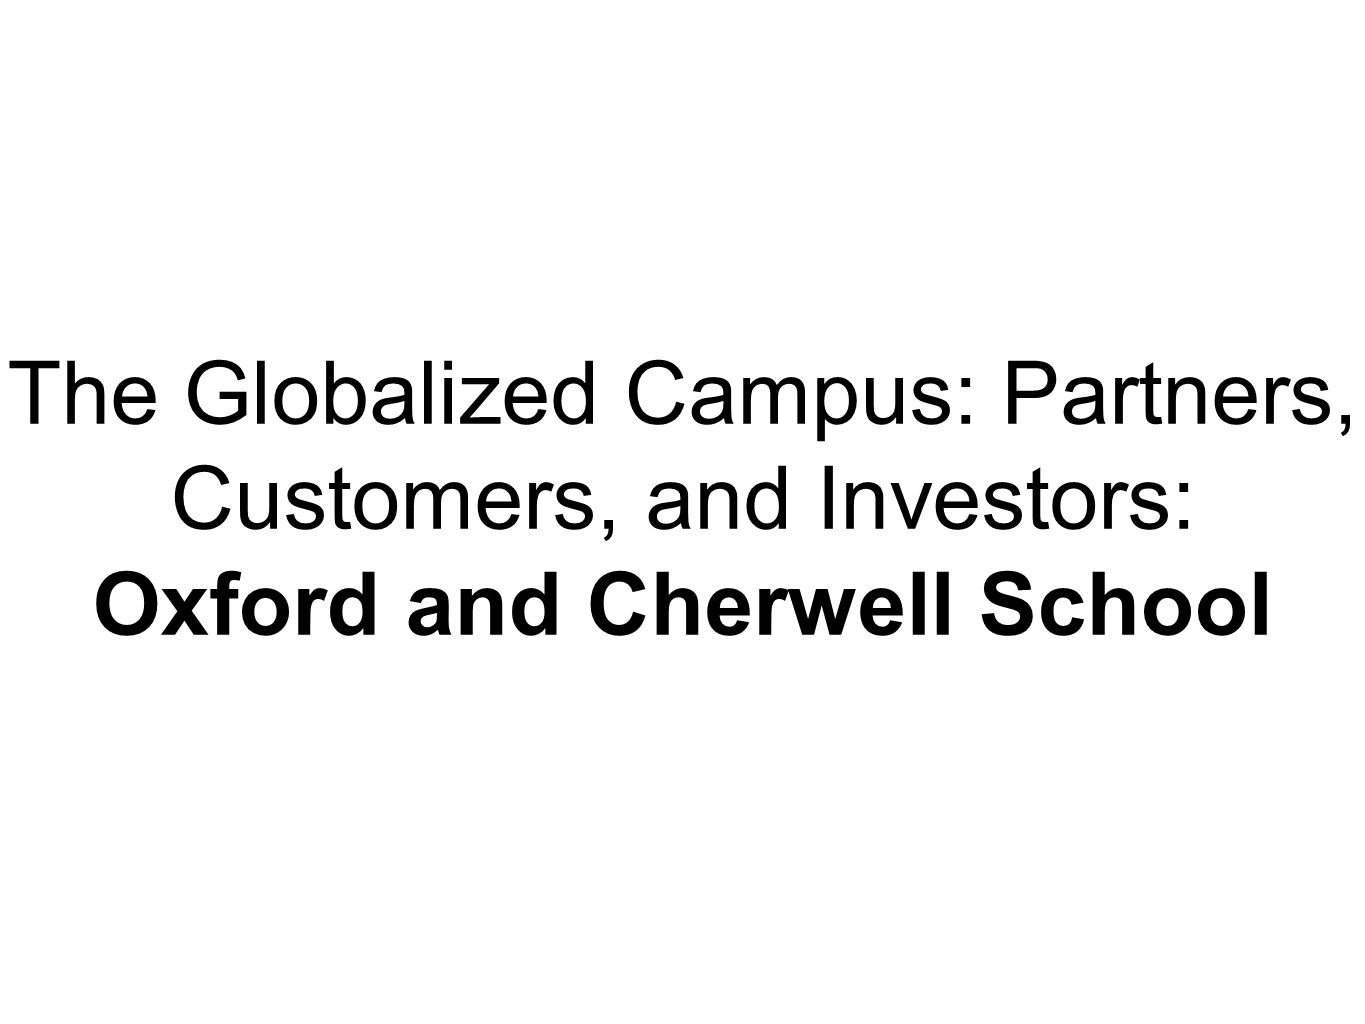 The Globalized Campus: Partners, Customers, and Investors: Oxford and Cherwell School